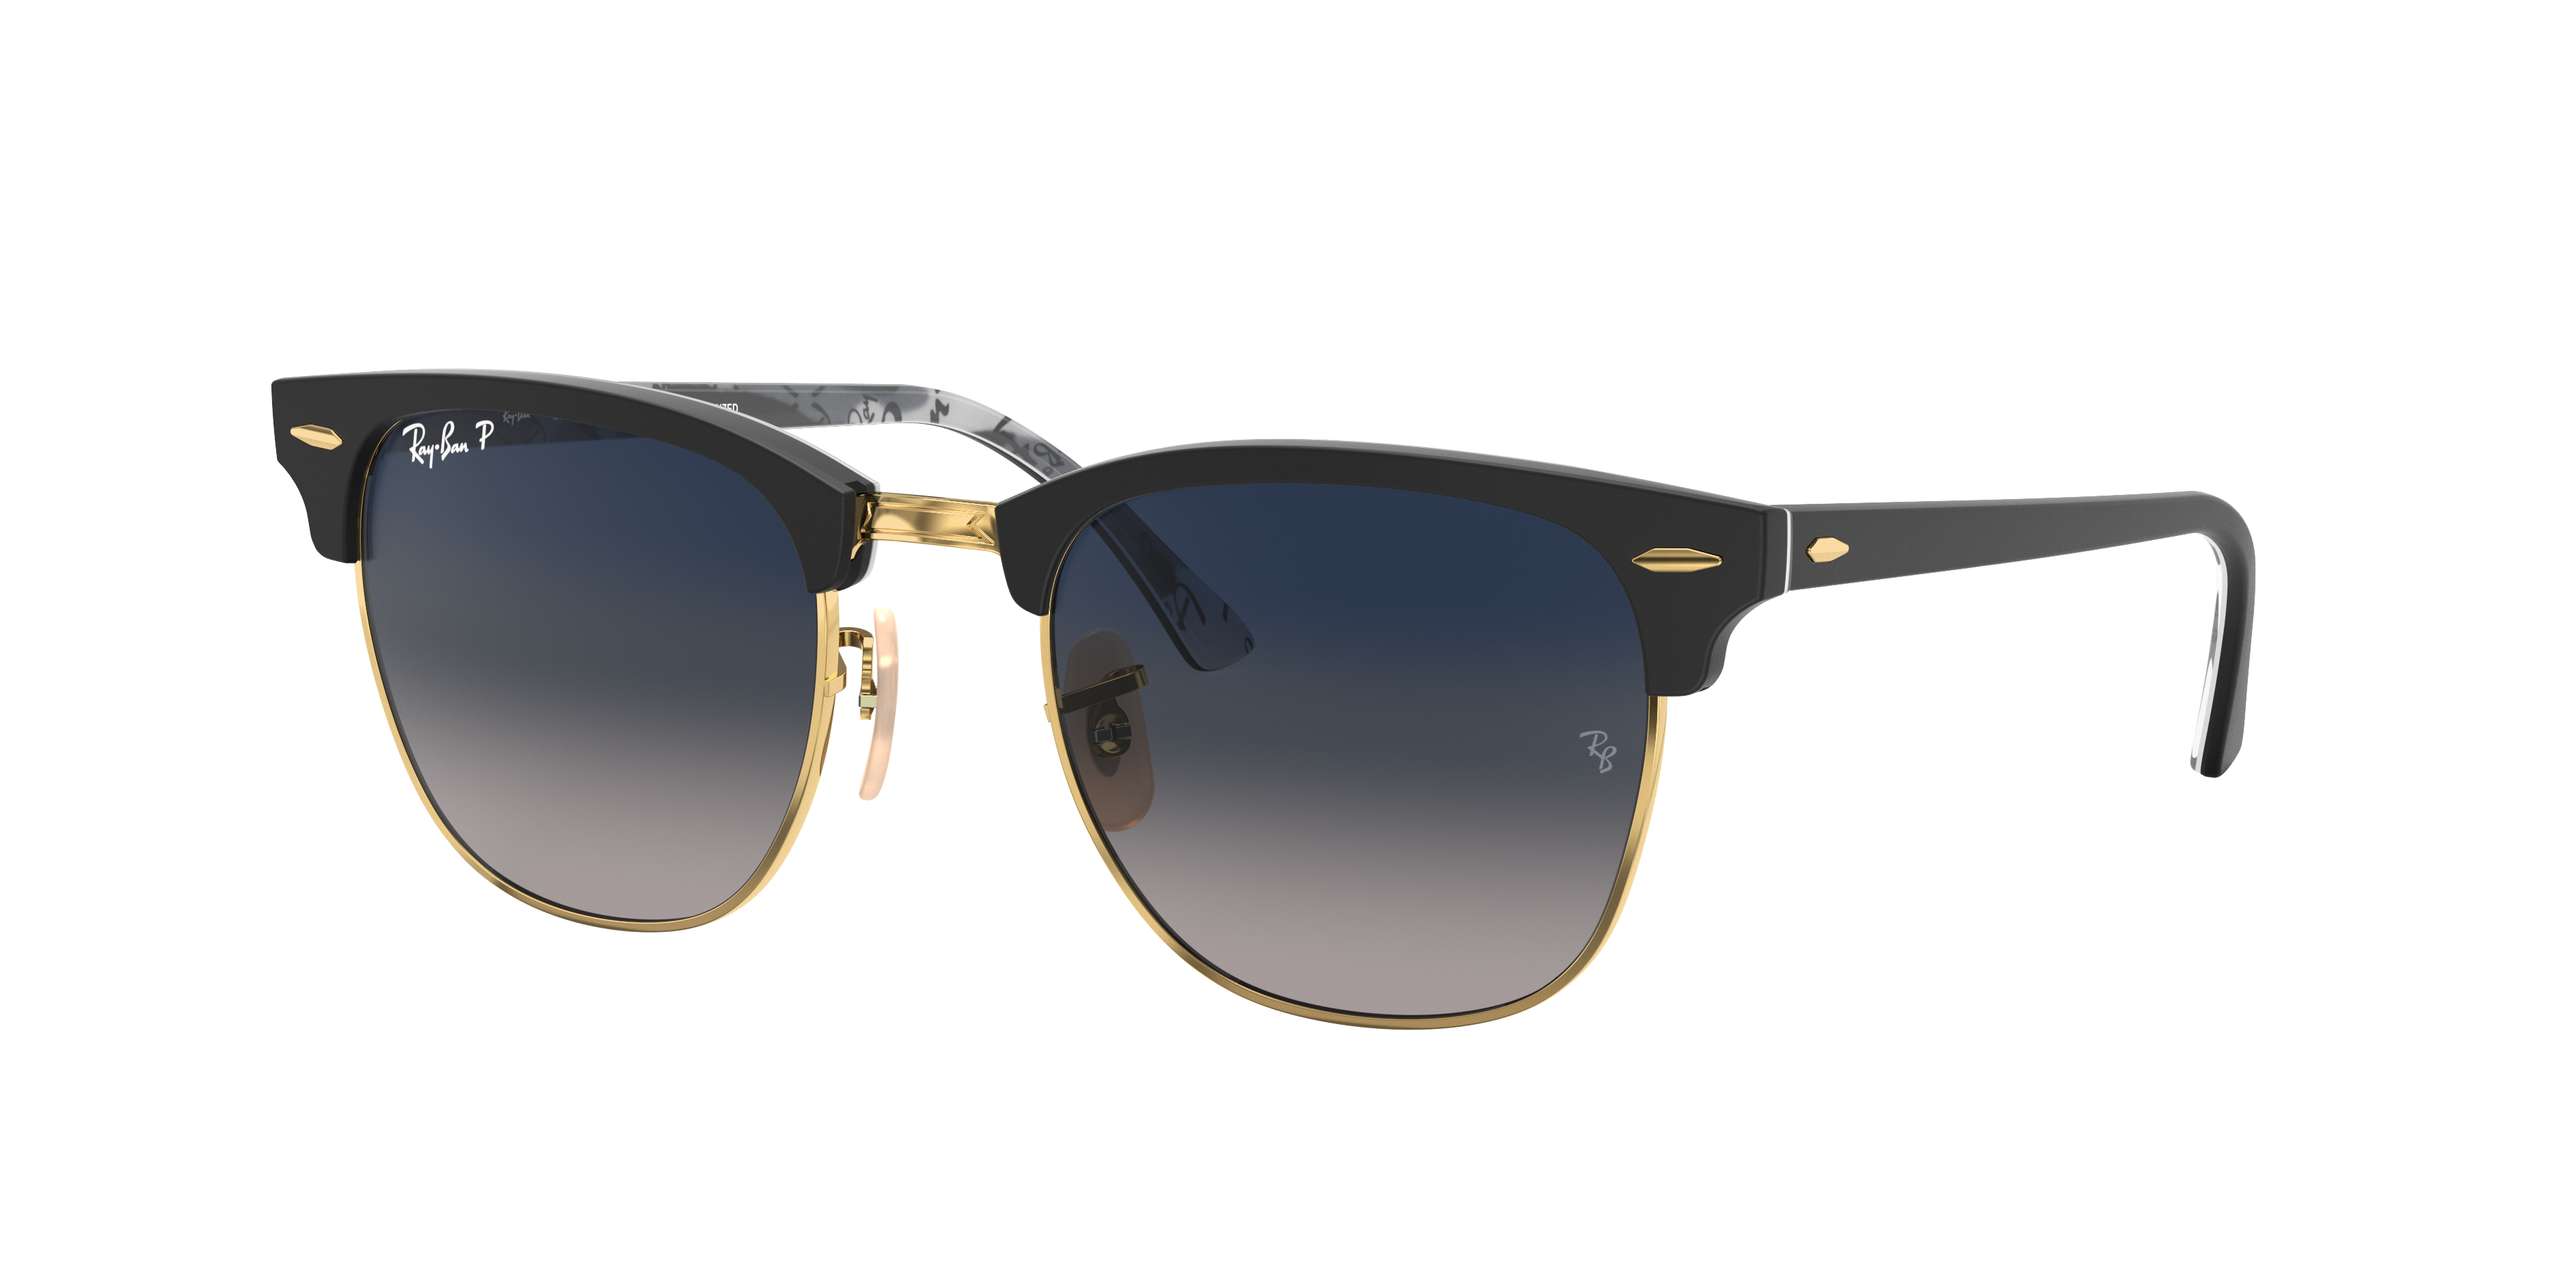 Ray-Ban Clubmaster @collection Black, Polarized Blue Lenses - RB3016